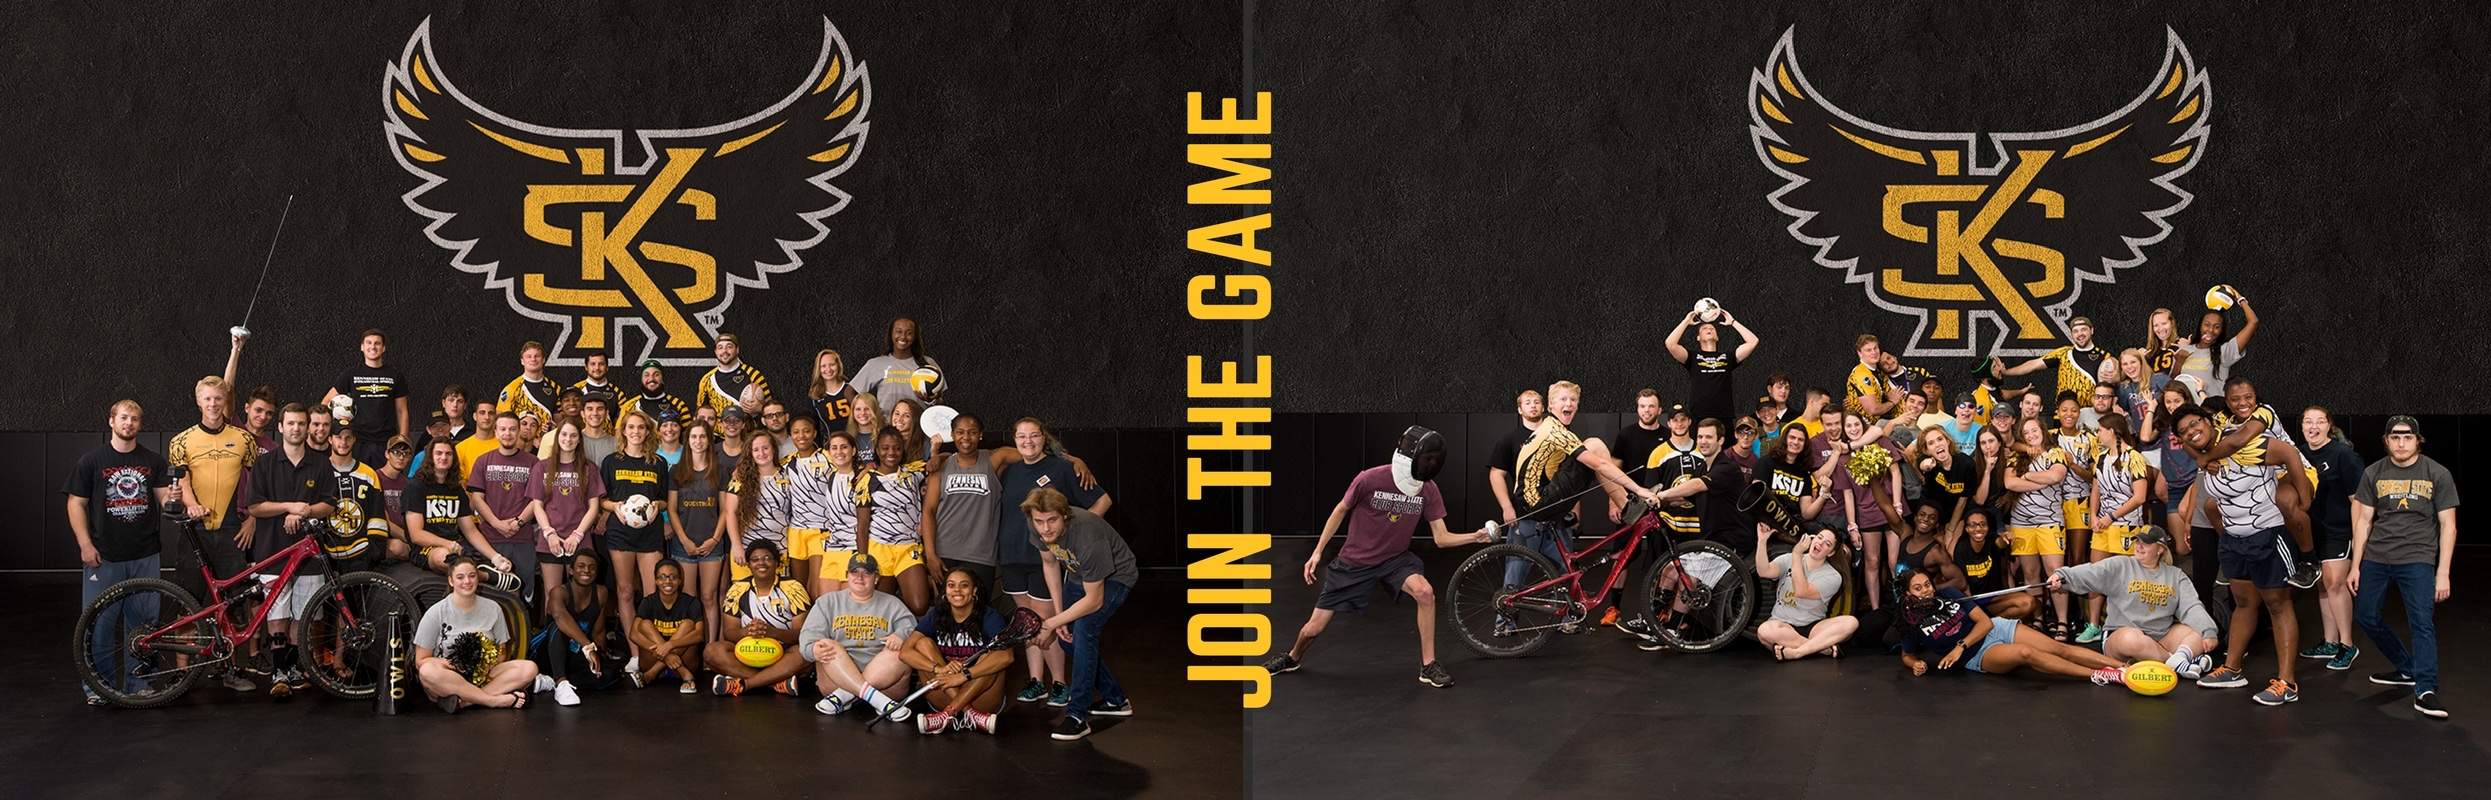 KSU Club Sports banner image